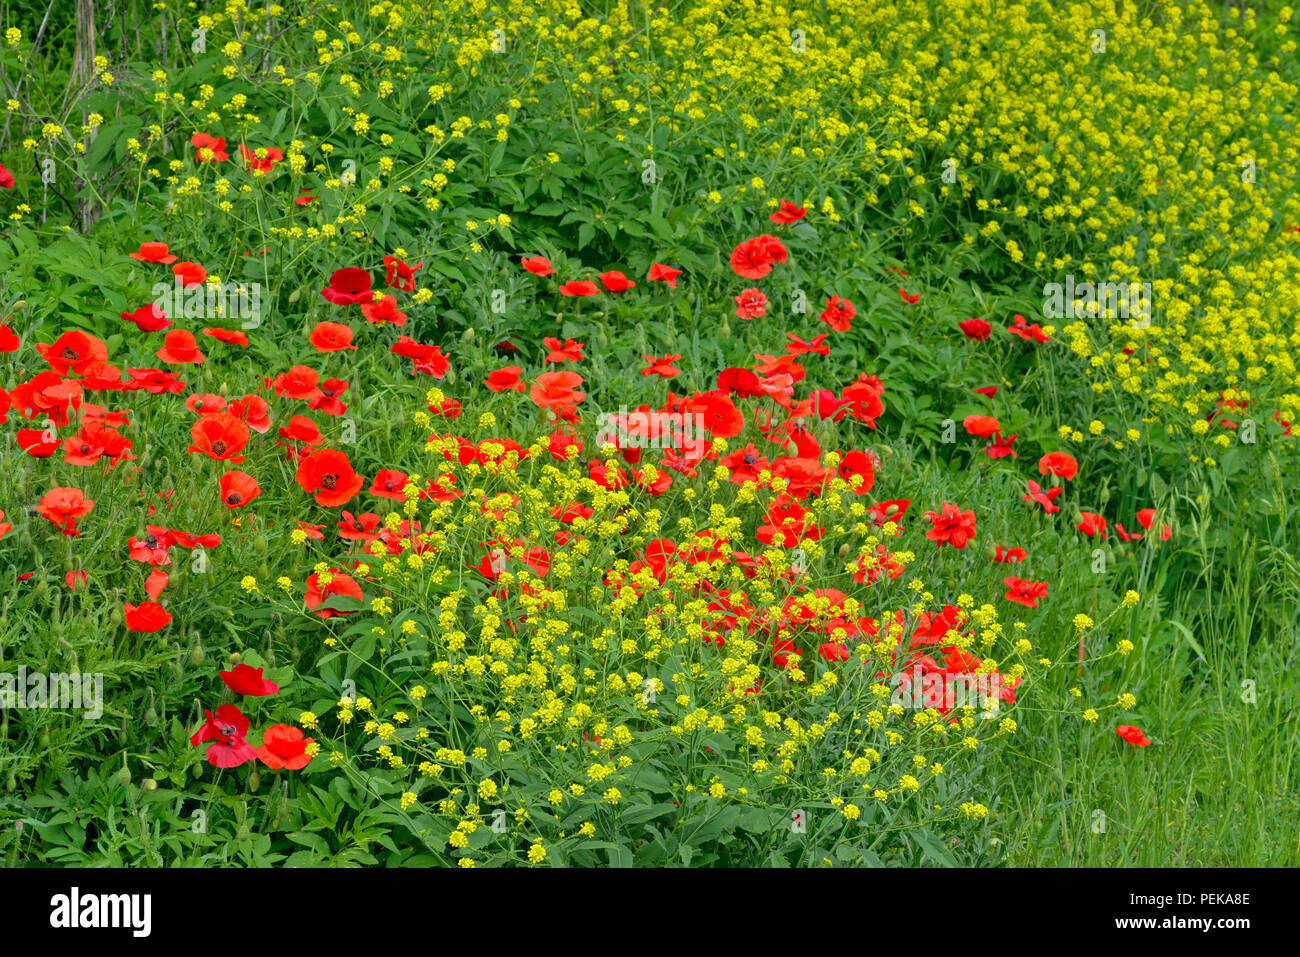 Roadside invasive flowers Red poppies and mustardweed, Blanco, Texas, USA - Stock Image